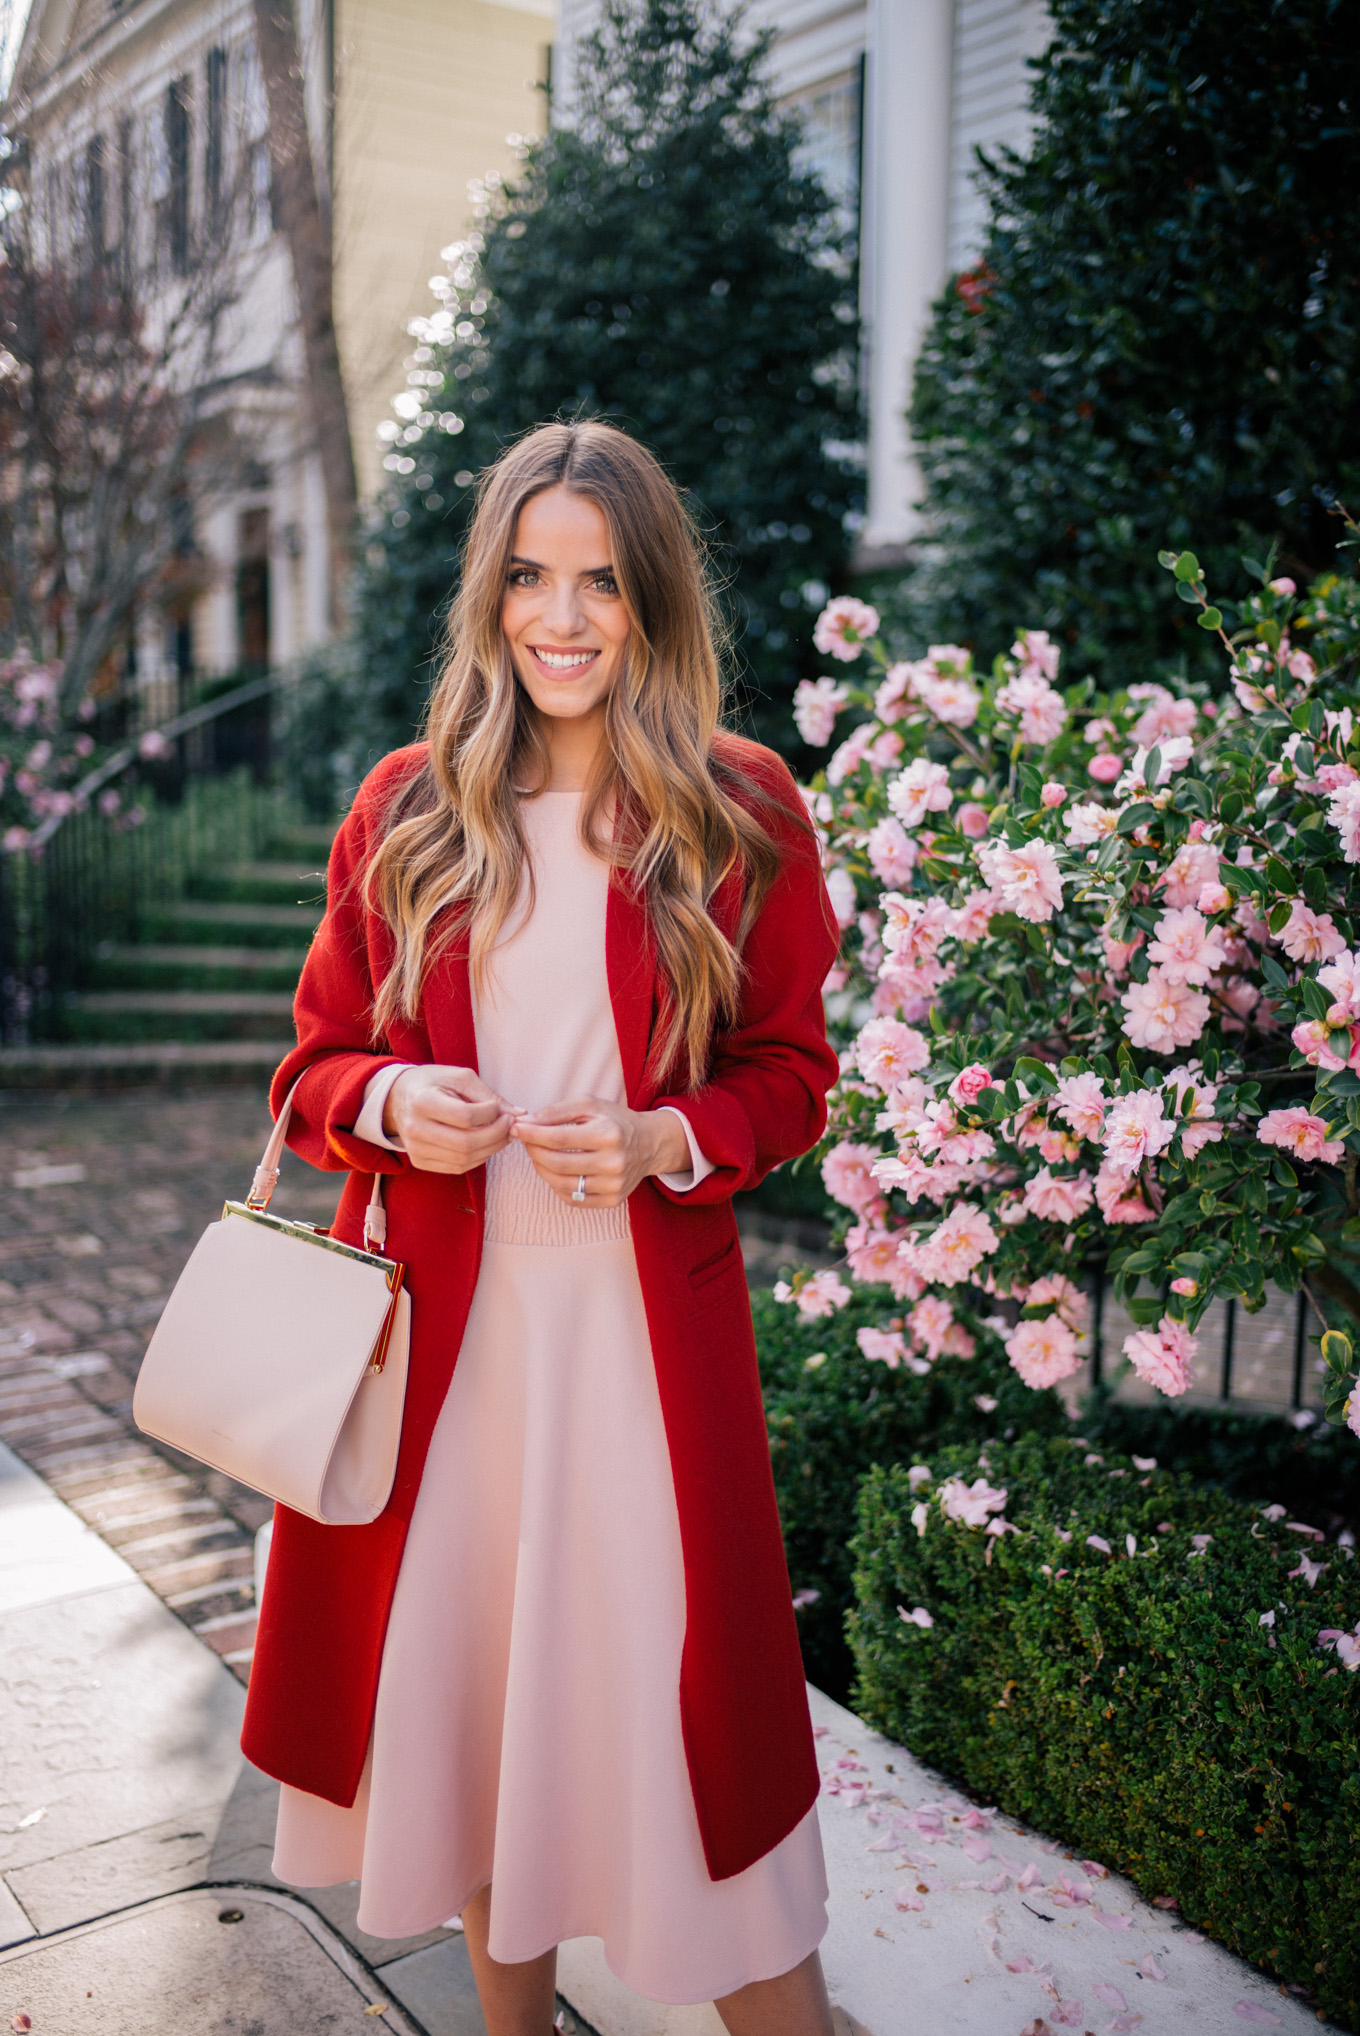 gmg-pink-dress-red-coat-1009347